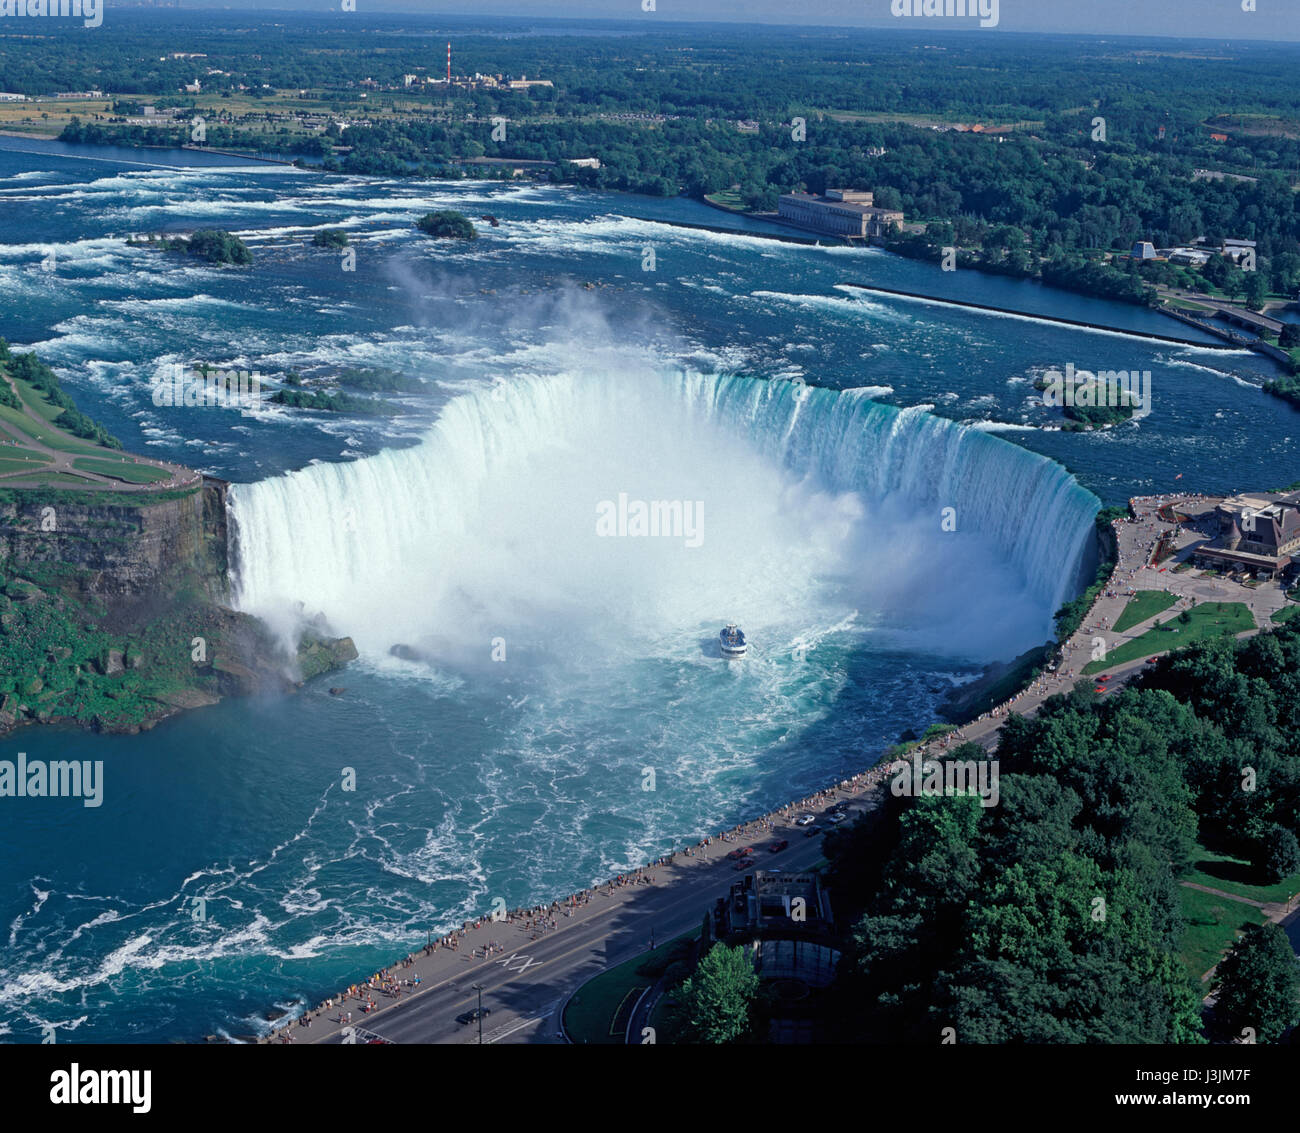 Niagara Falls and Maid of the Mist pleasure boat, Ontario, Canada - Stock Image